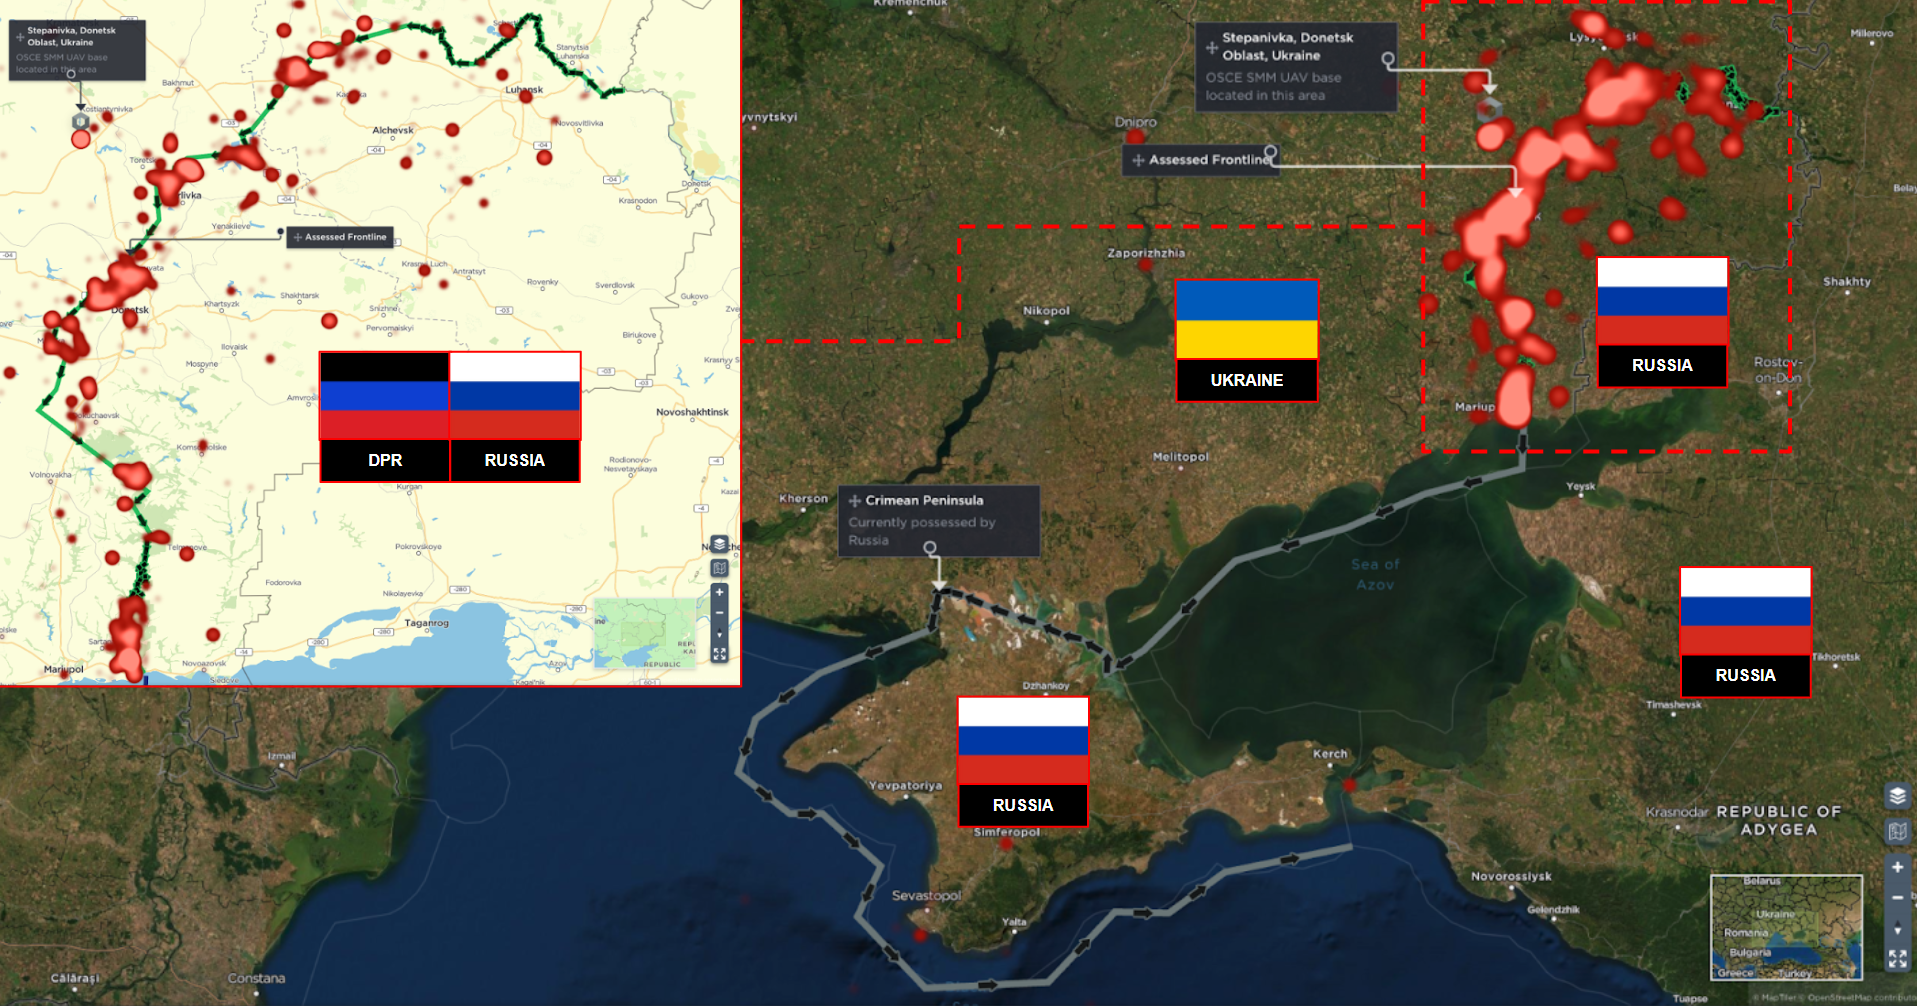 Donbass conflict hotspots and controlled territories russia ukraine war